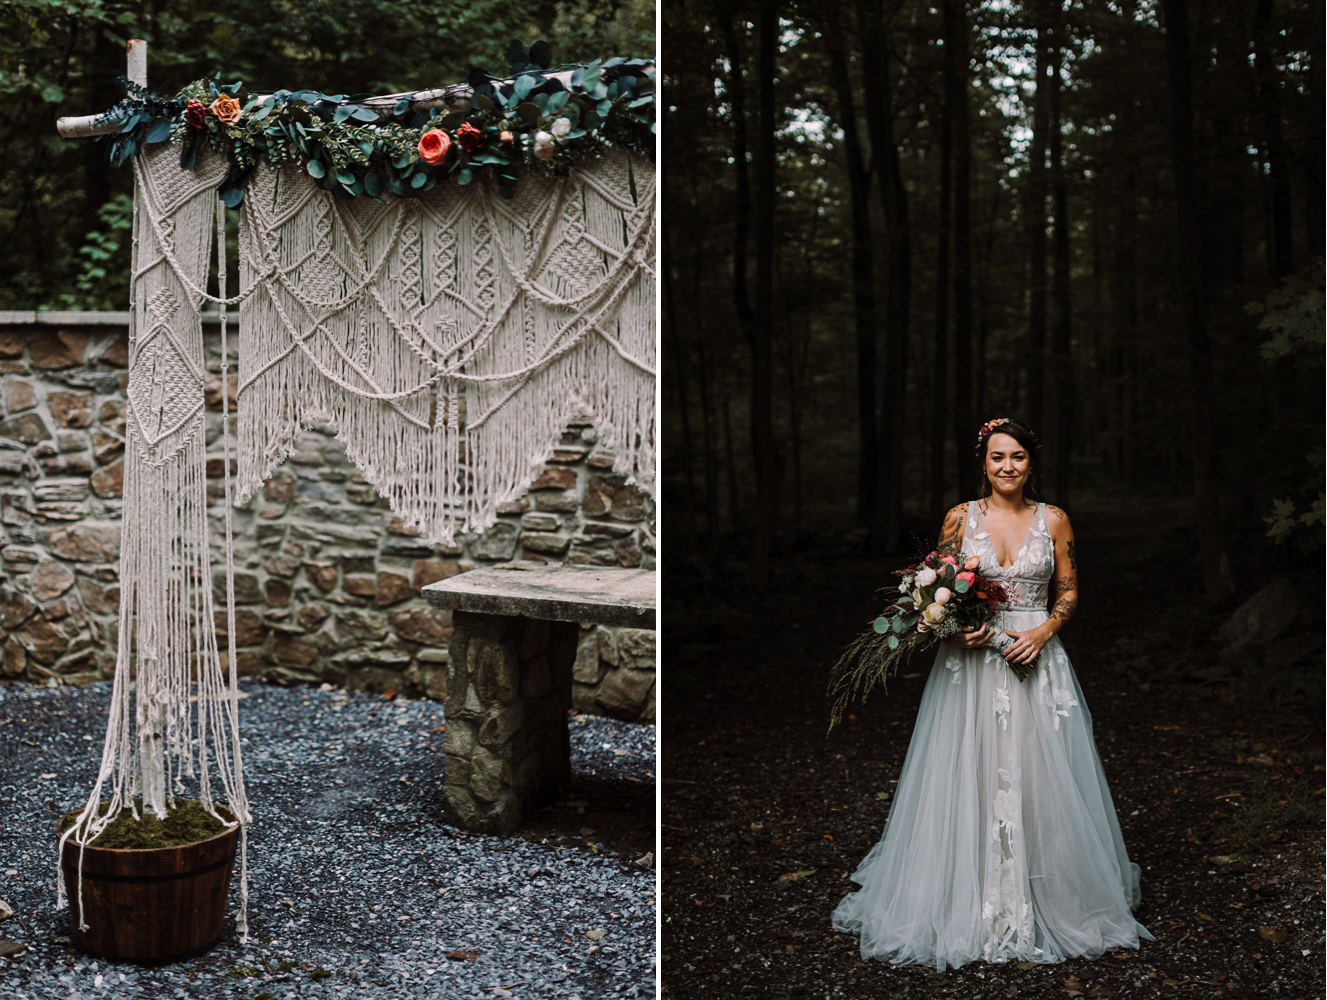 barbara O photography md dc camp wedding photographer macrame backdrop.jpg